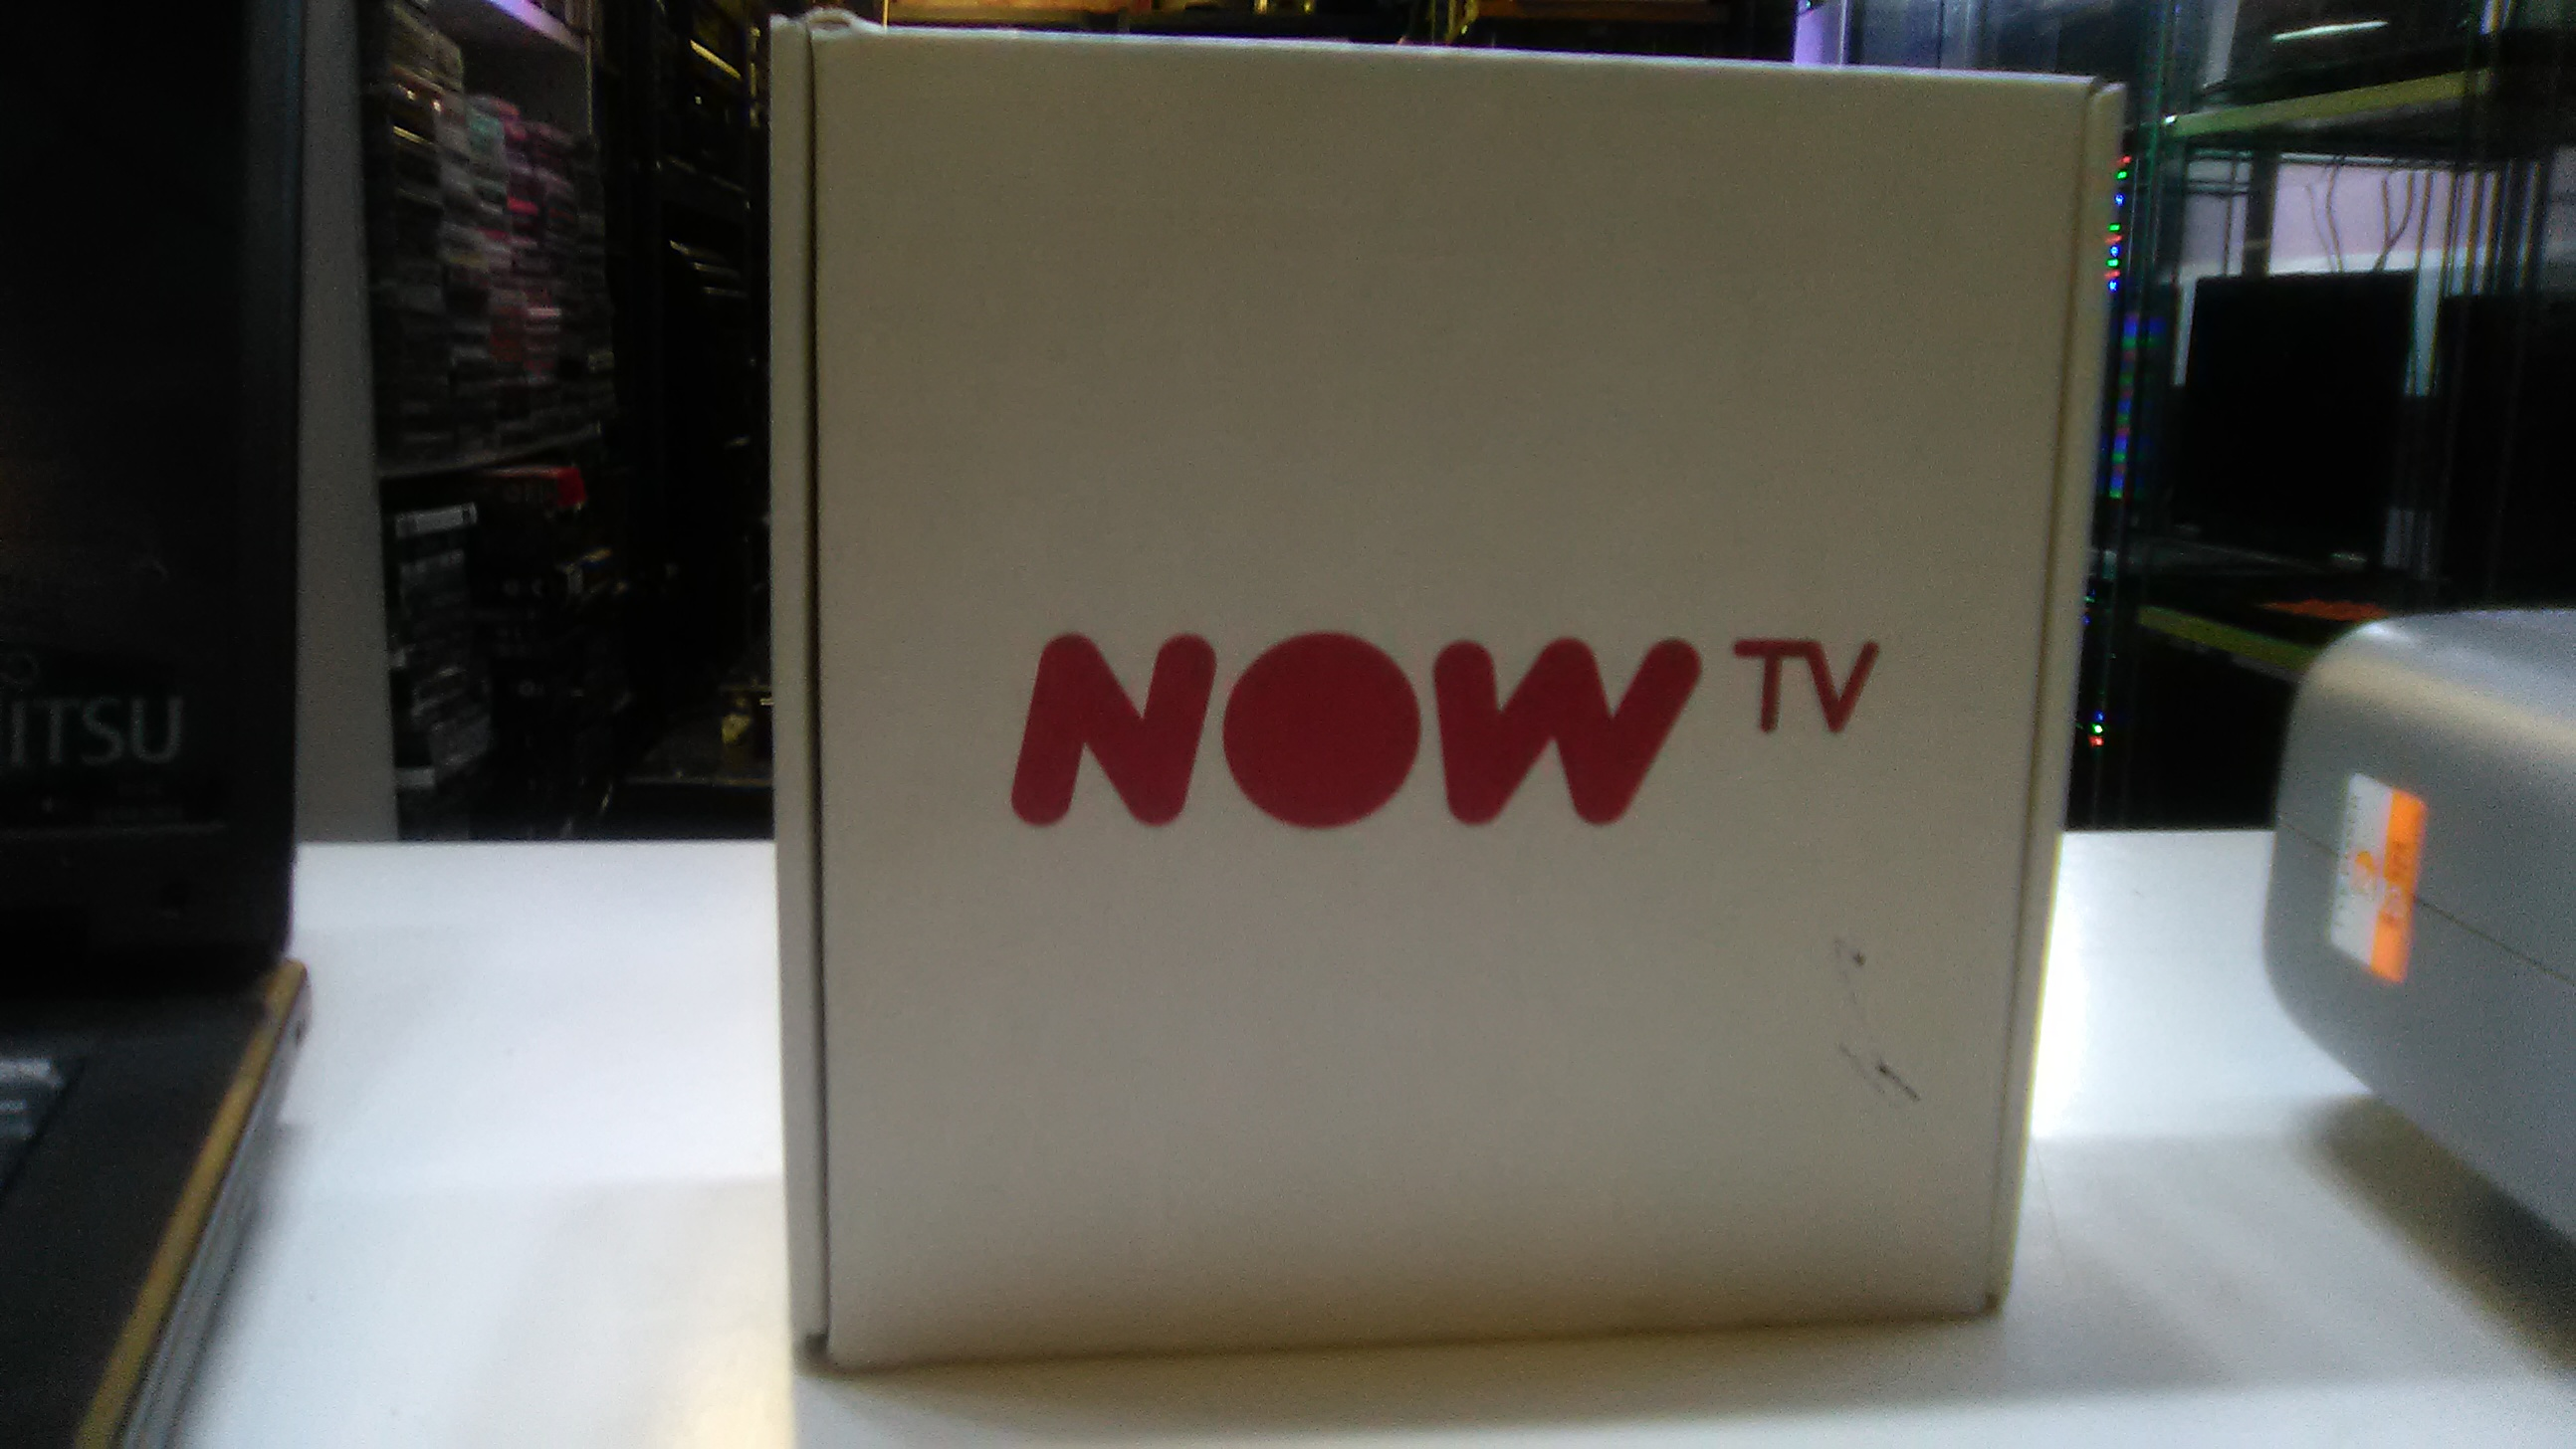 Now box TV new